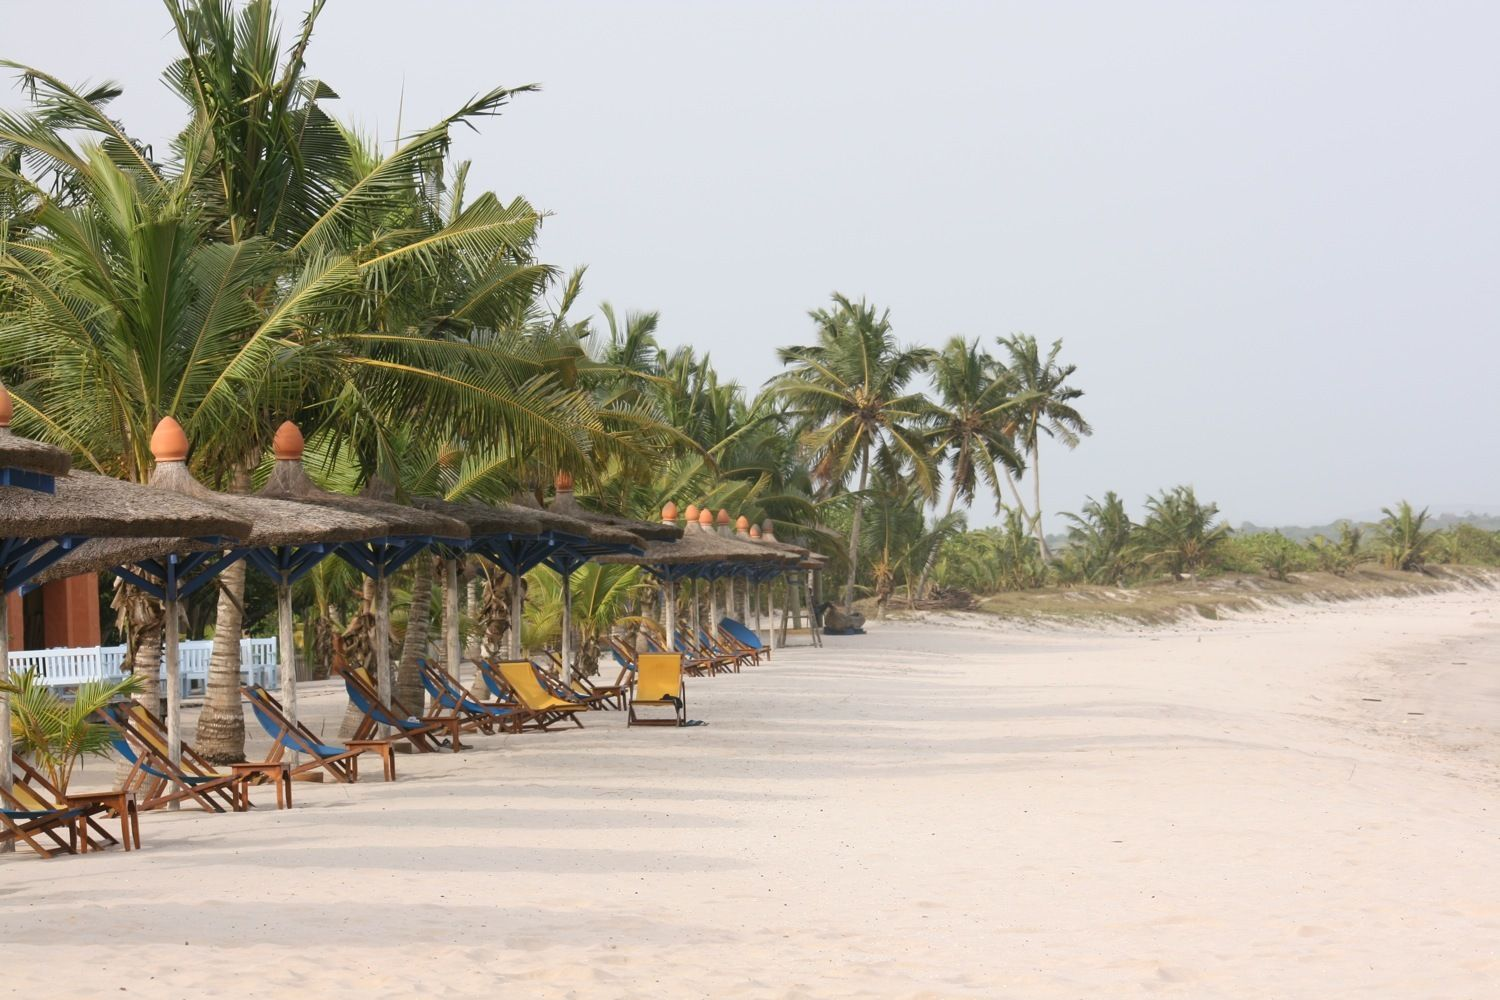 125 things to do in accra and ghana u2022 beaches day trips and